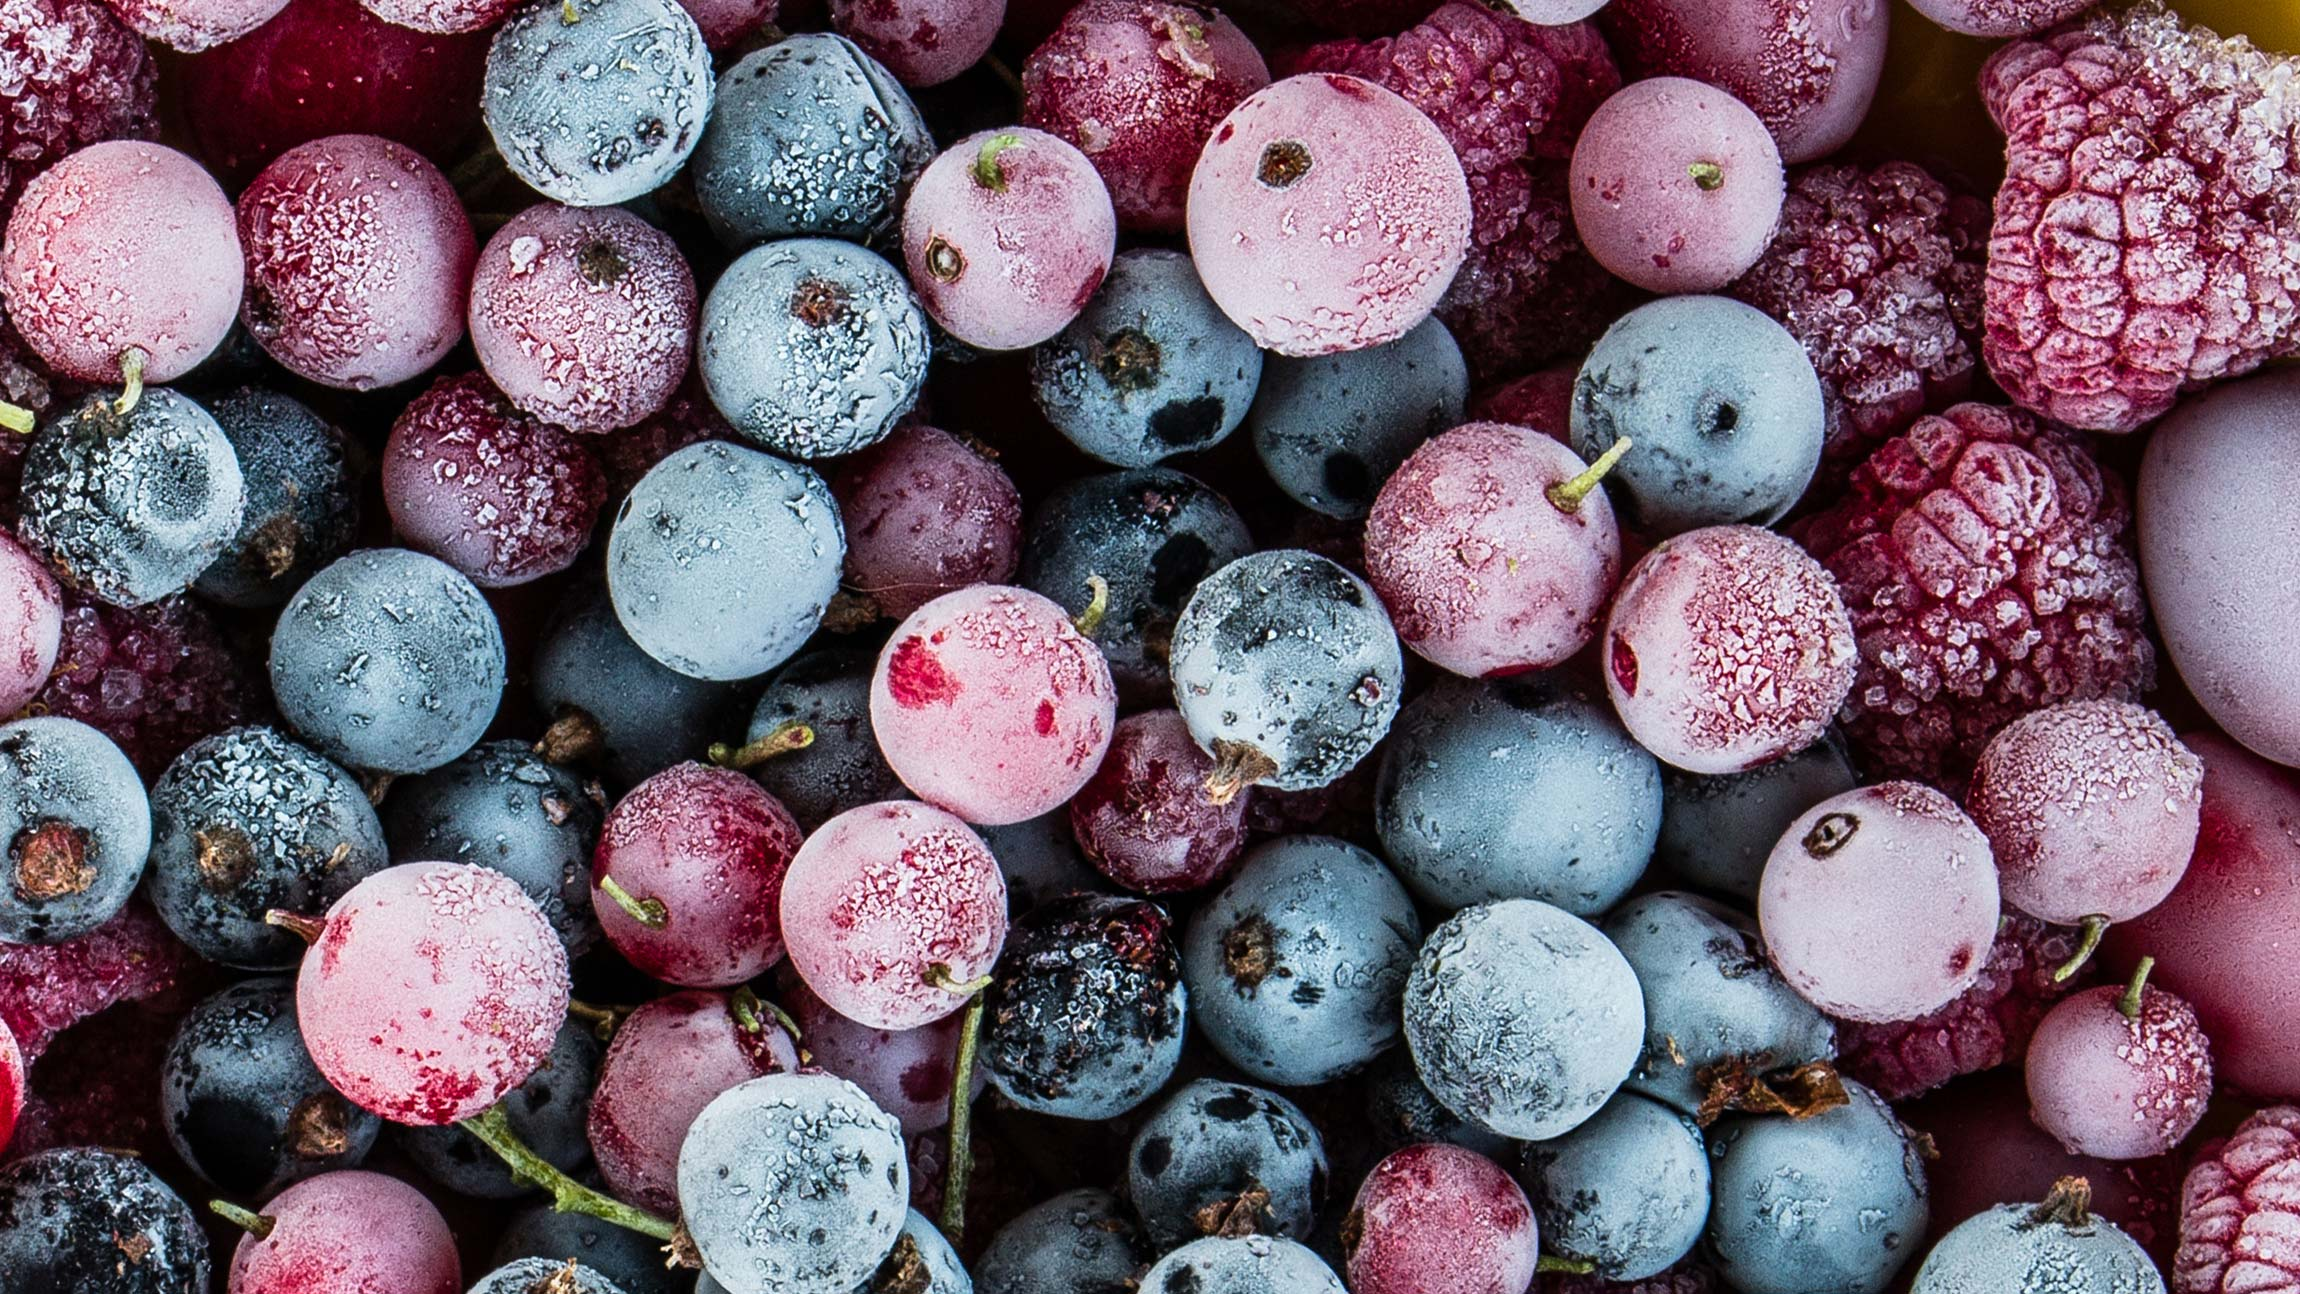 frozen blueberries, cherries, and rasberries